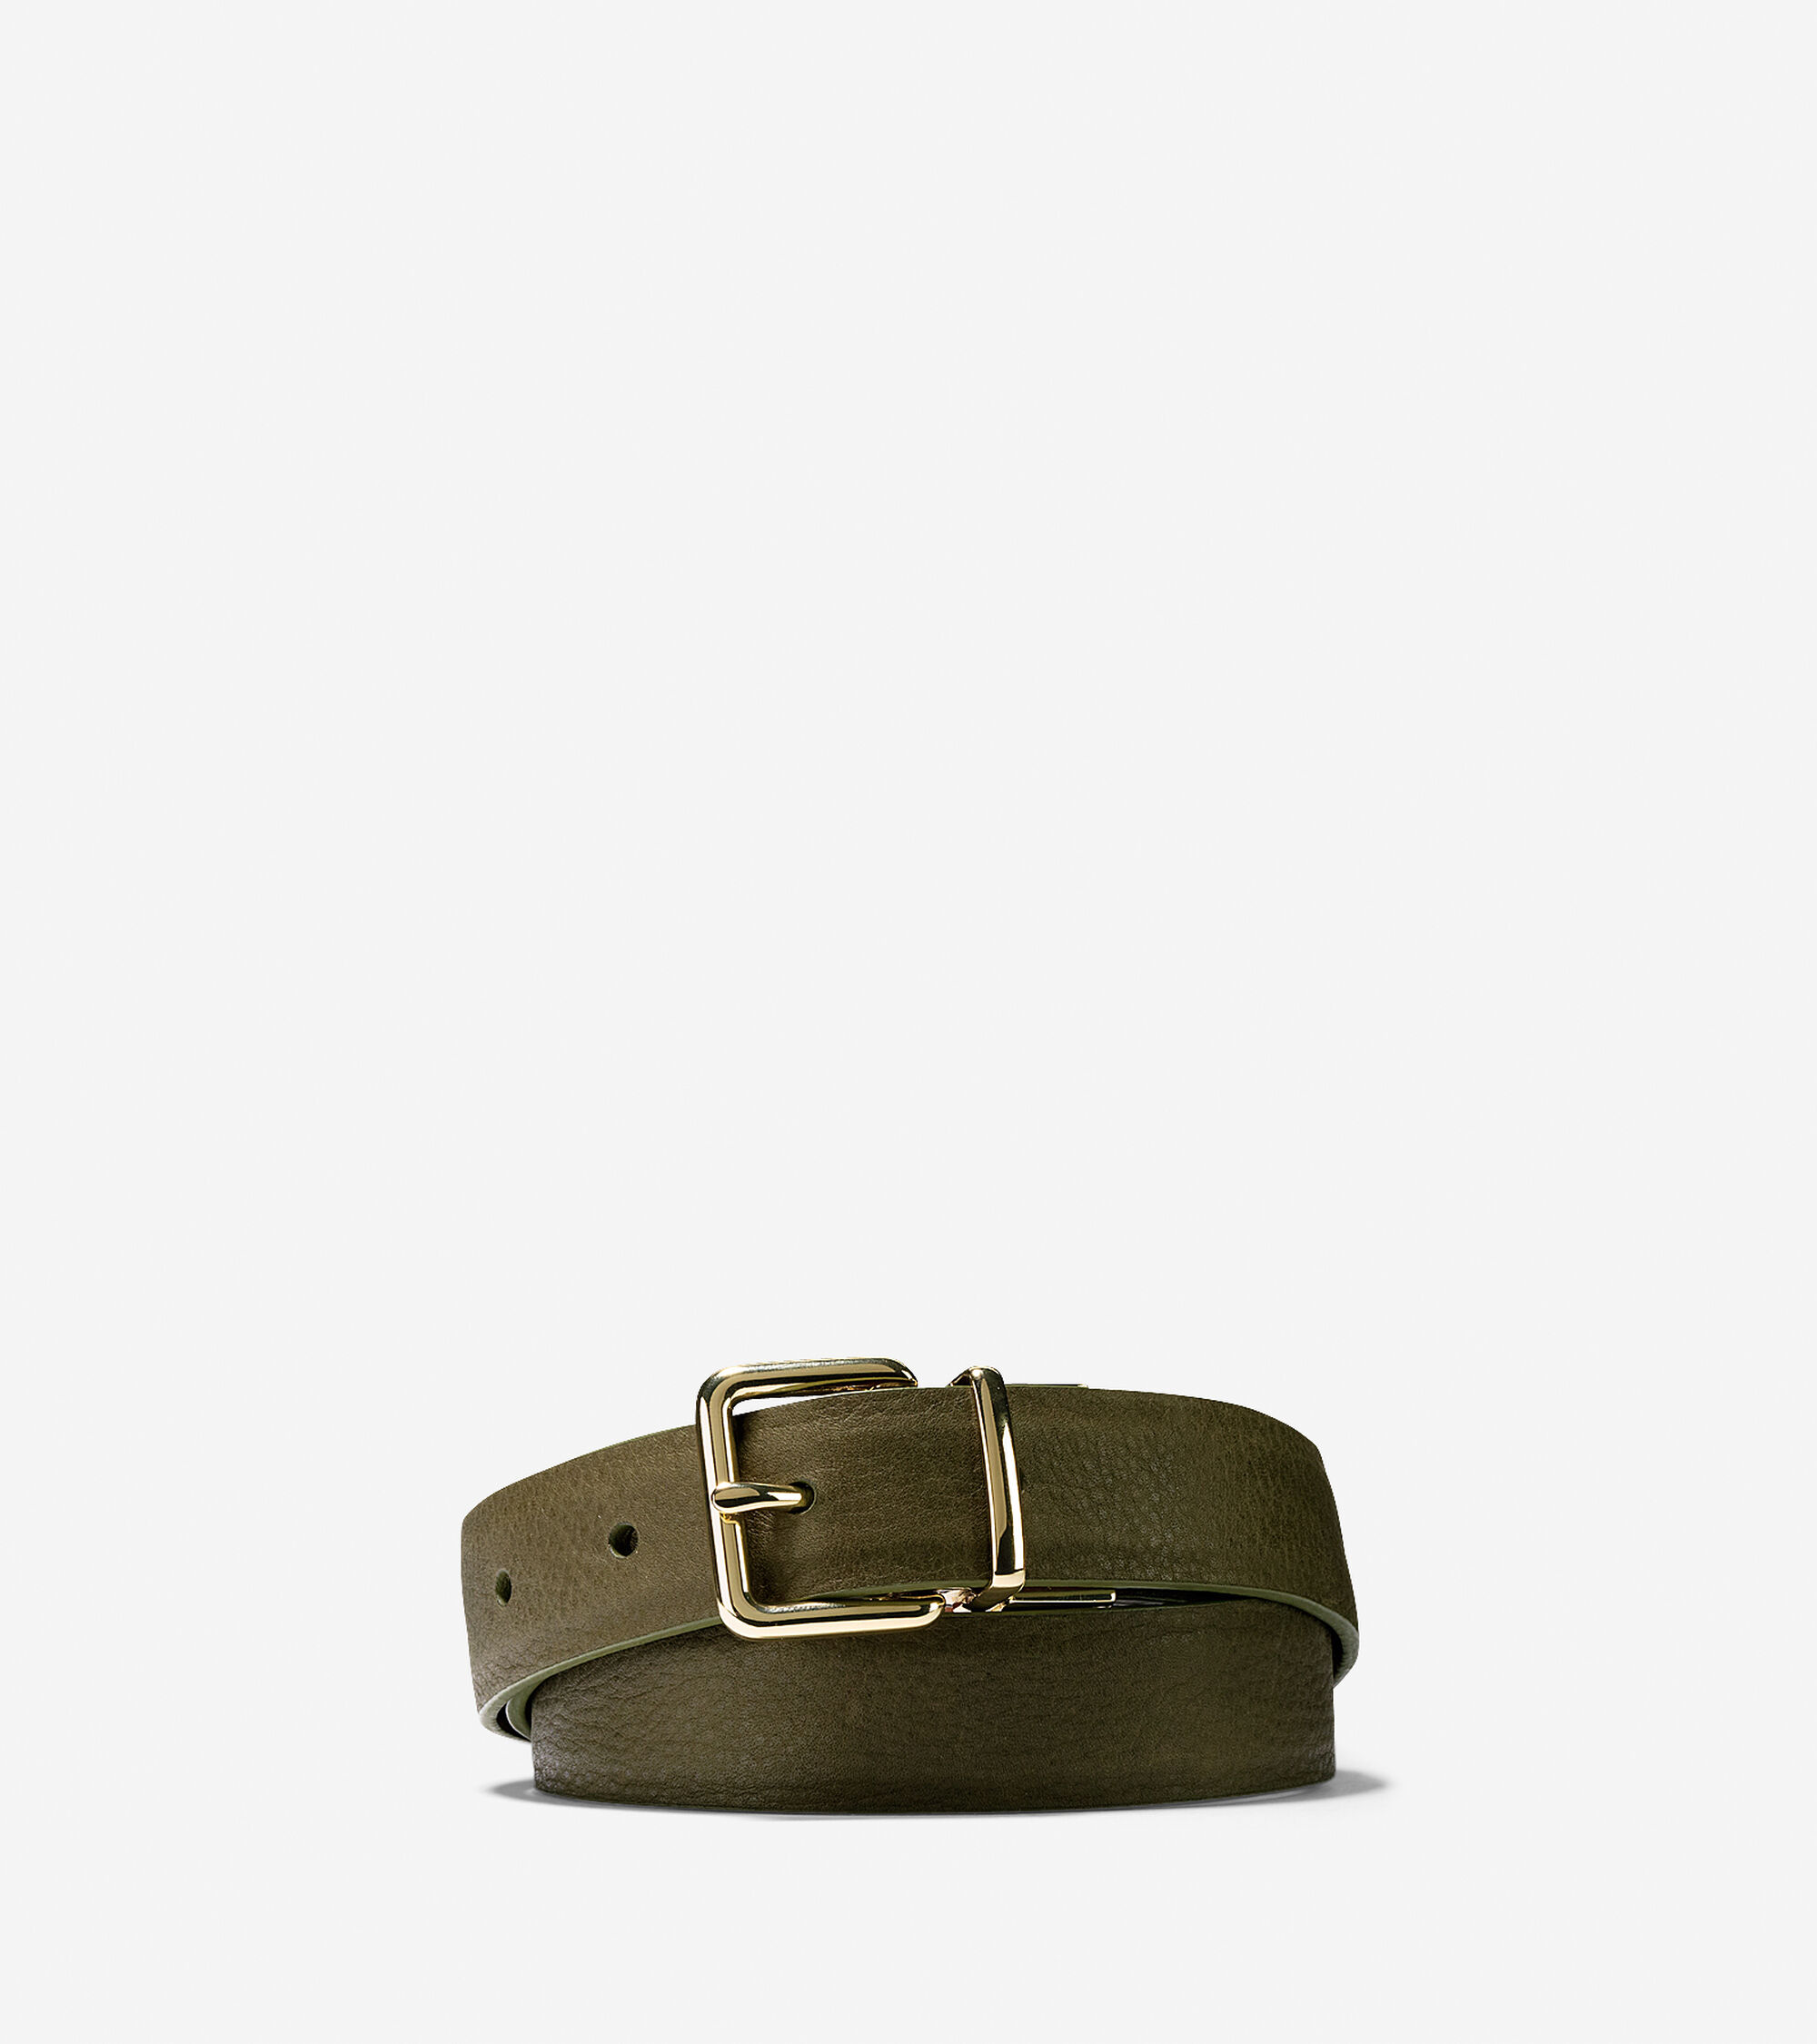 Accessories > Reversible Leather Belt